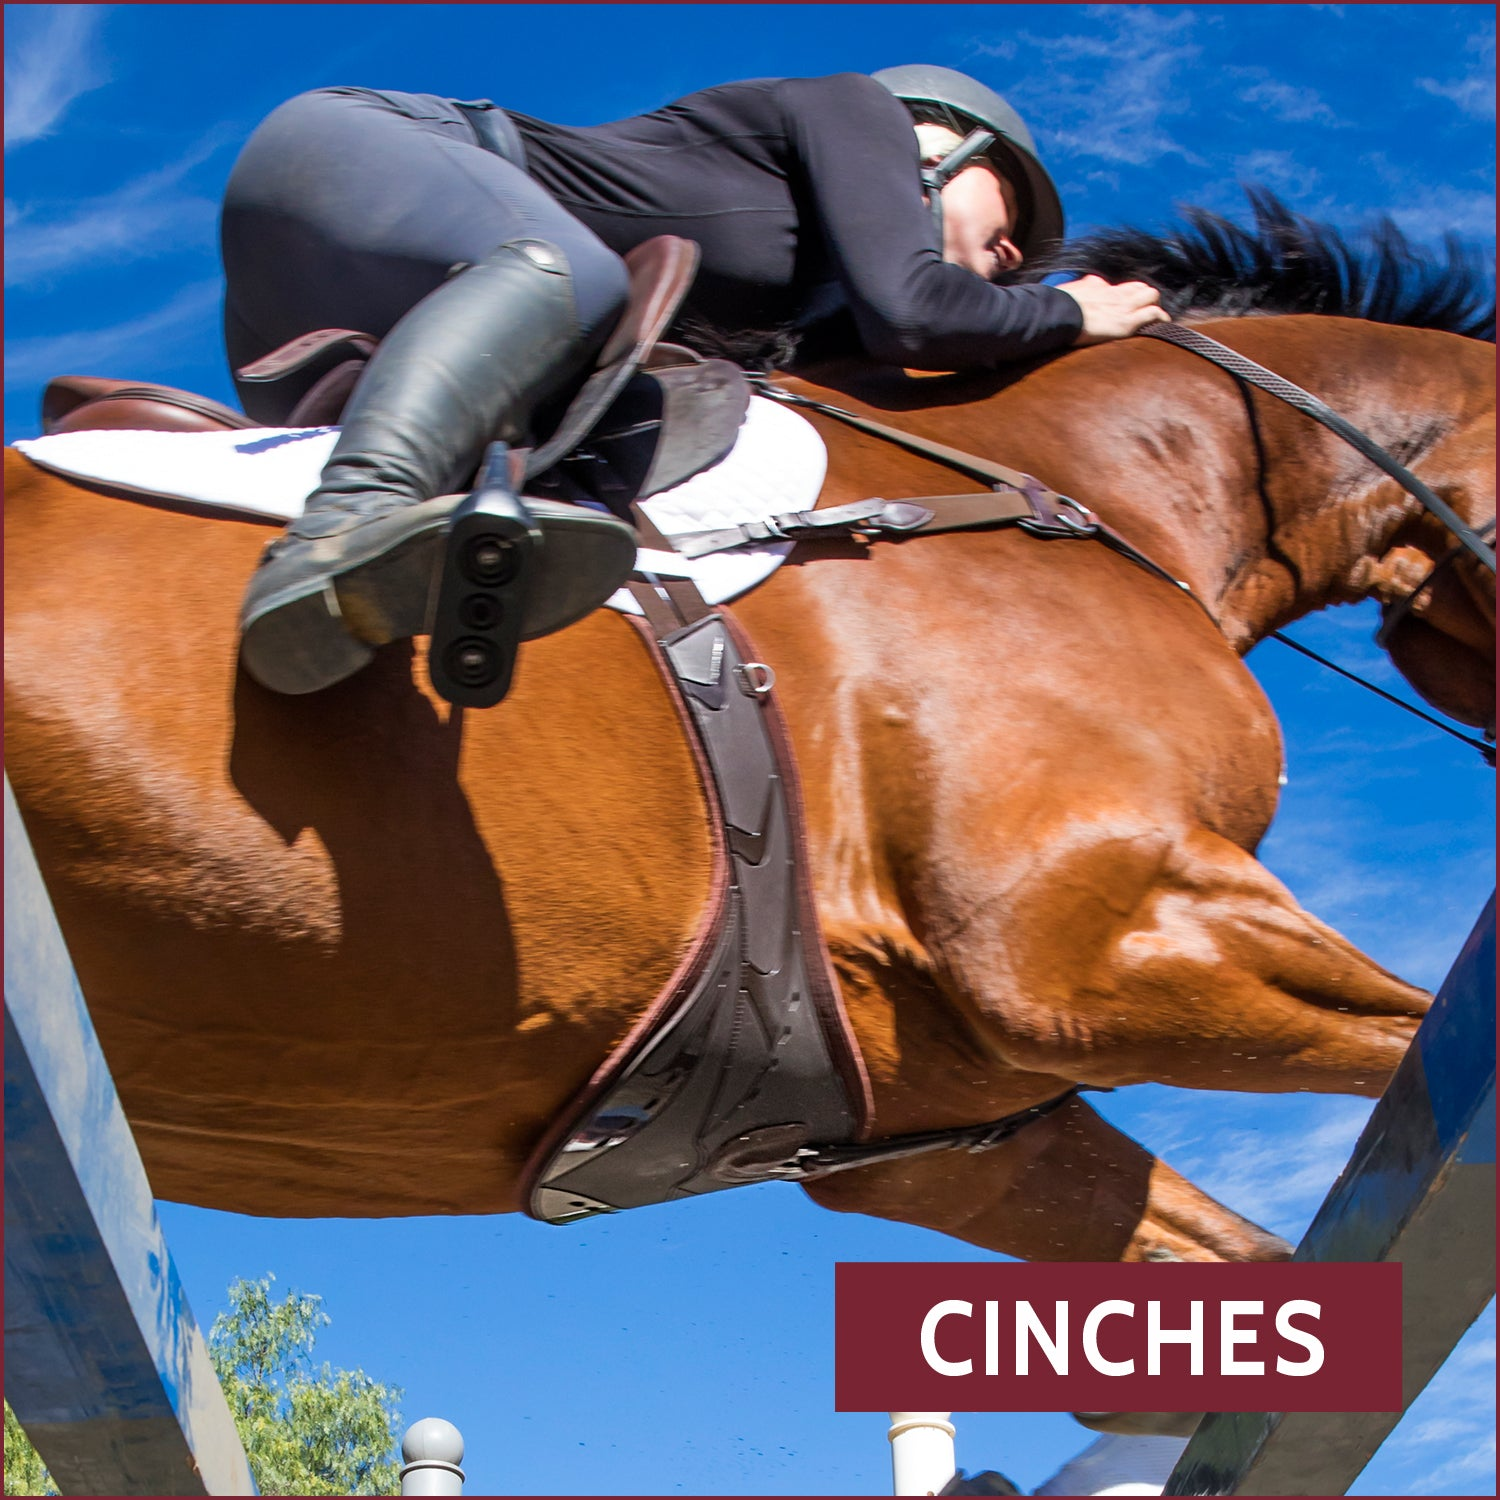 Cinches